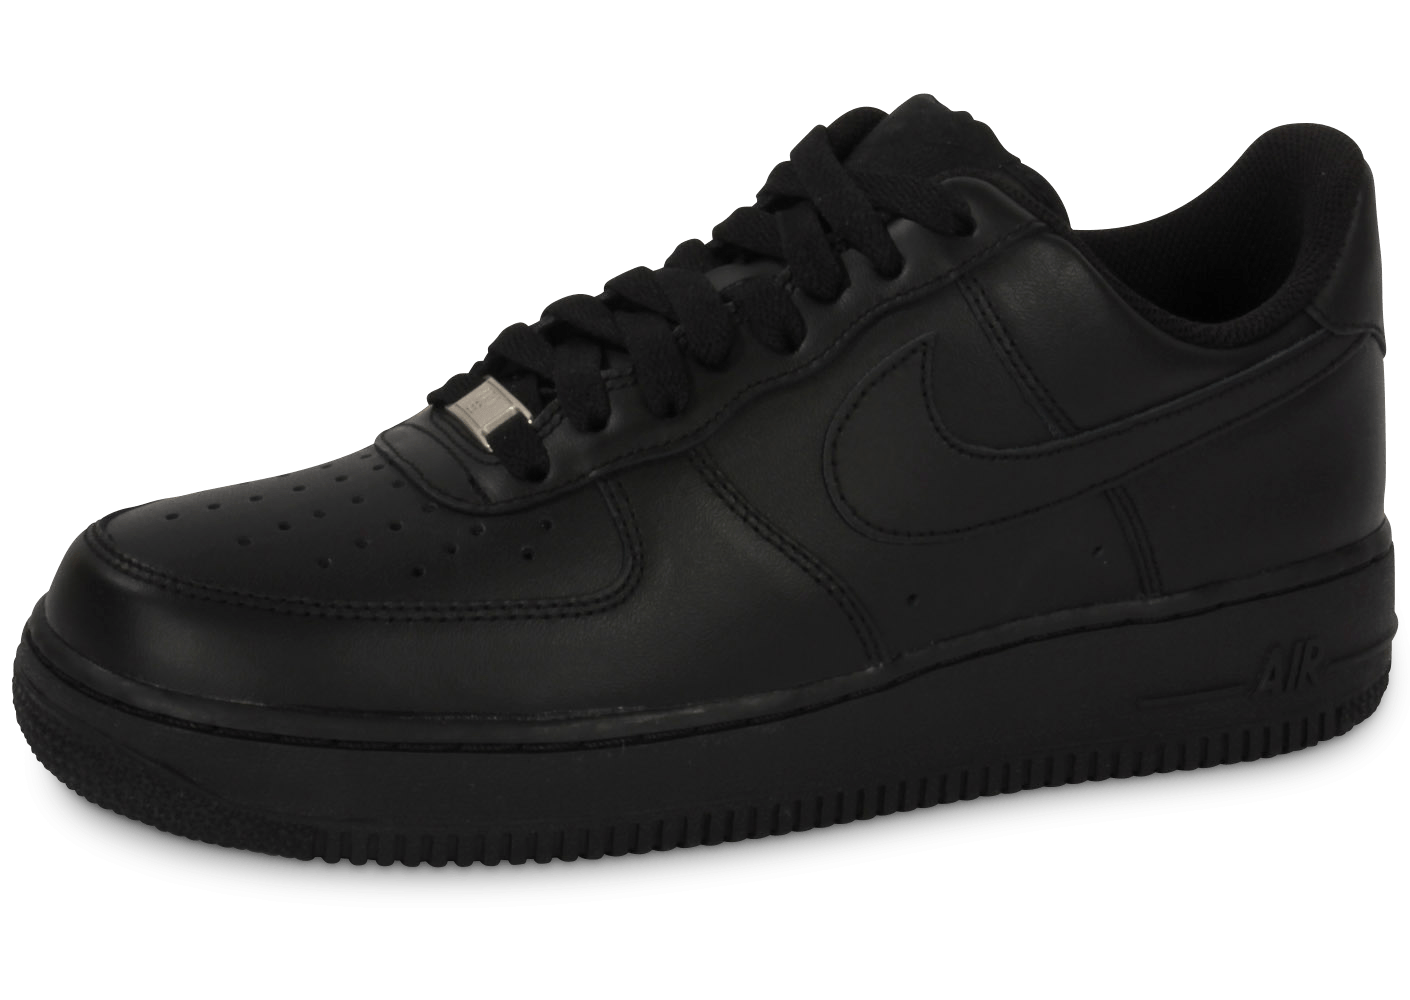 nike air force 1 noire chaussures homme chausport. Black Bedroom Furniture Sets. Home Design Ideas